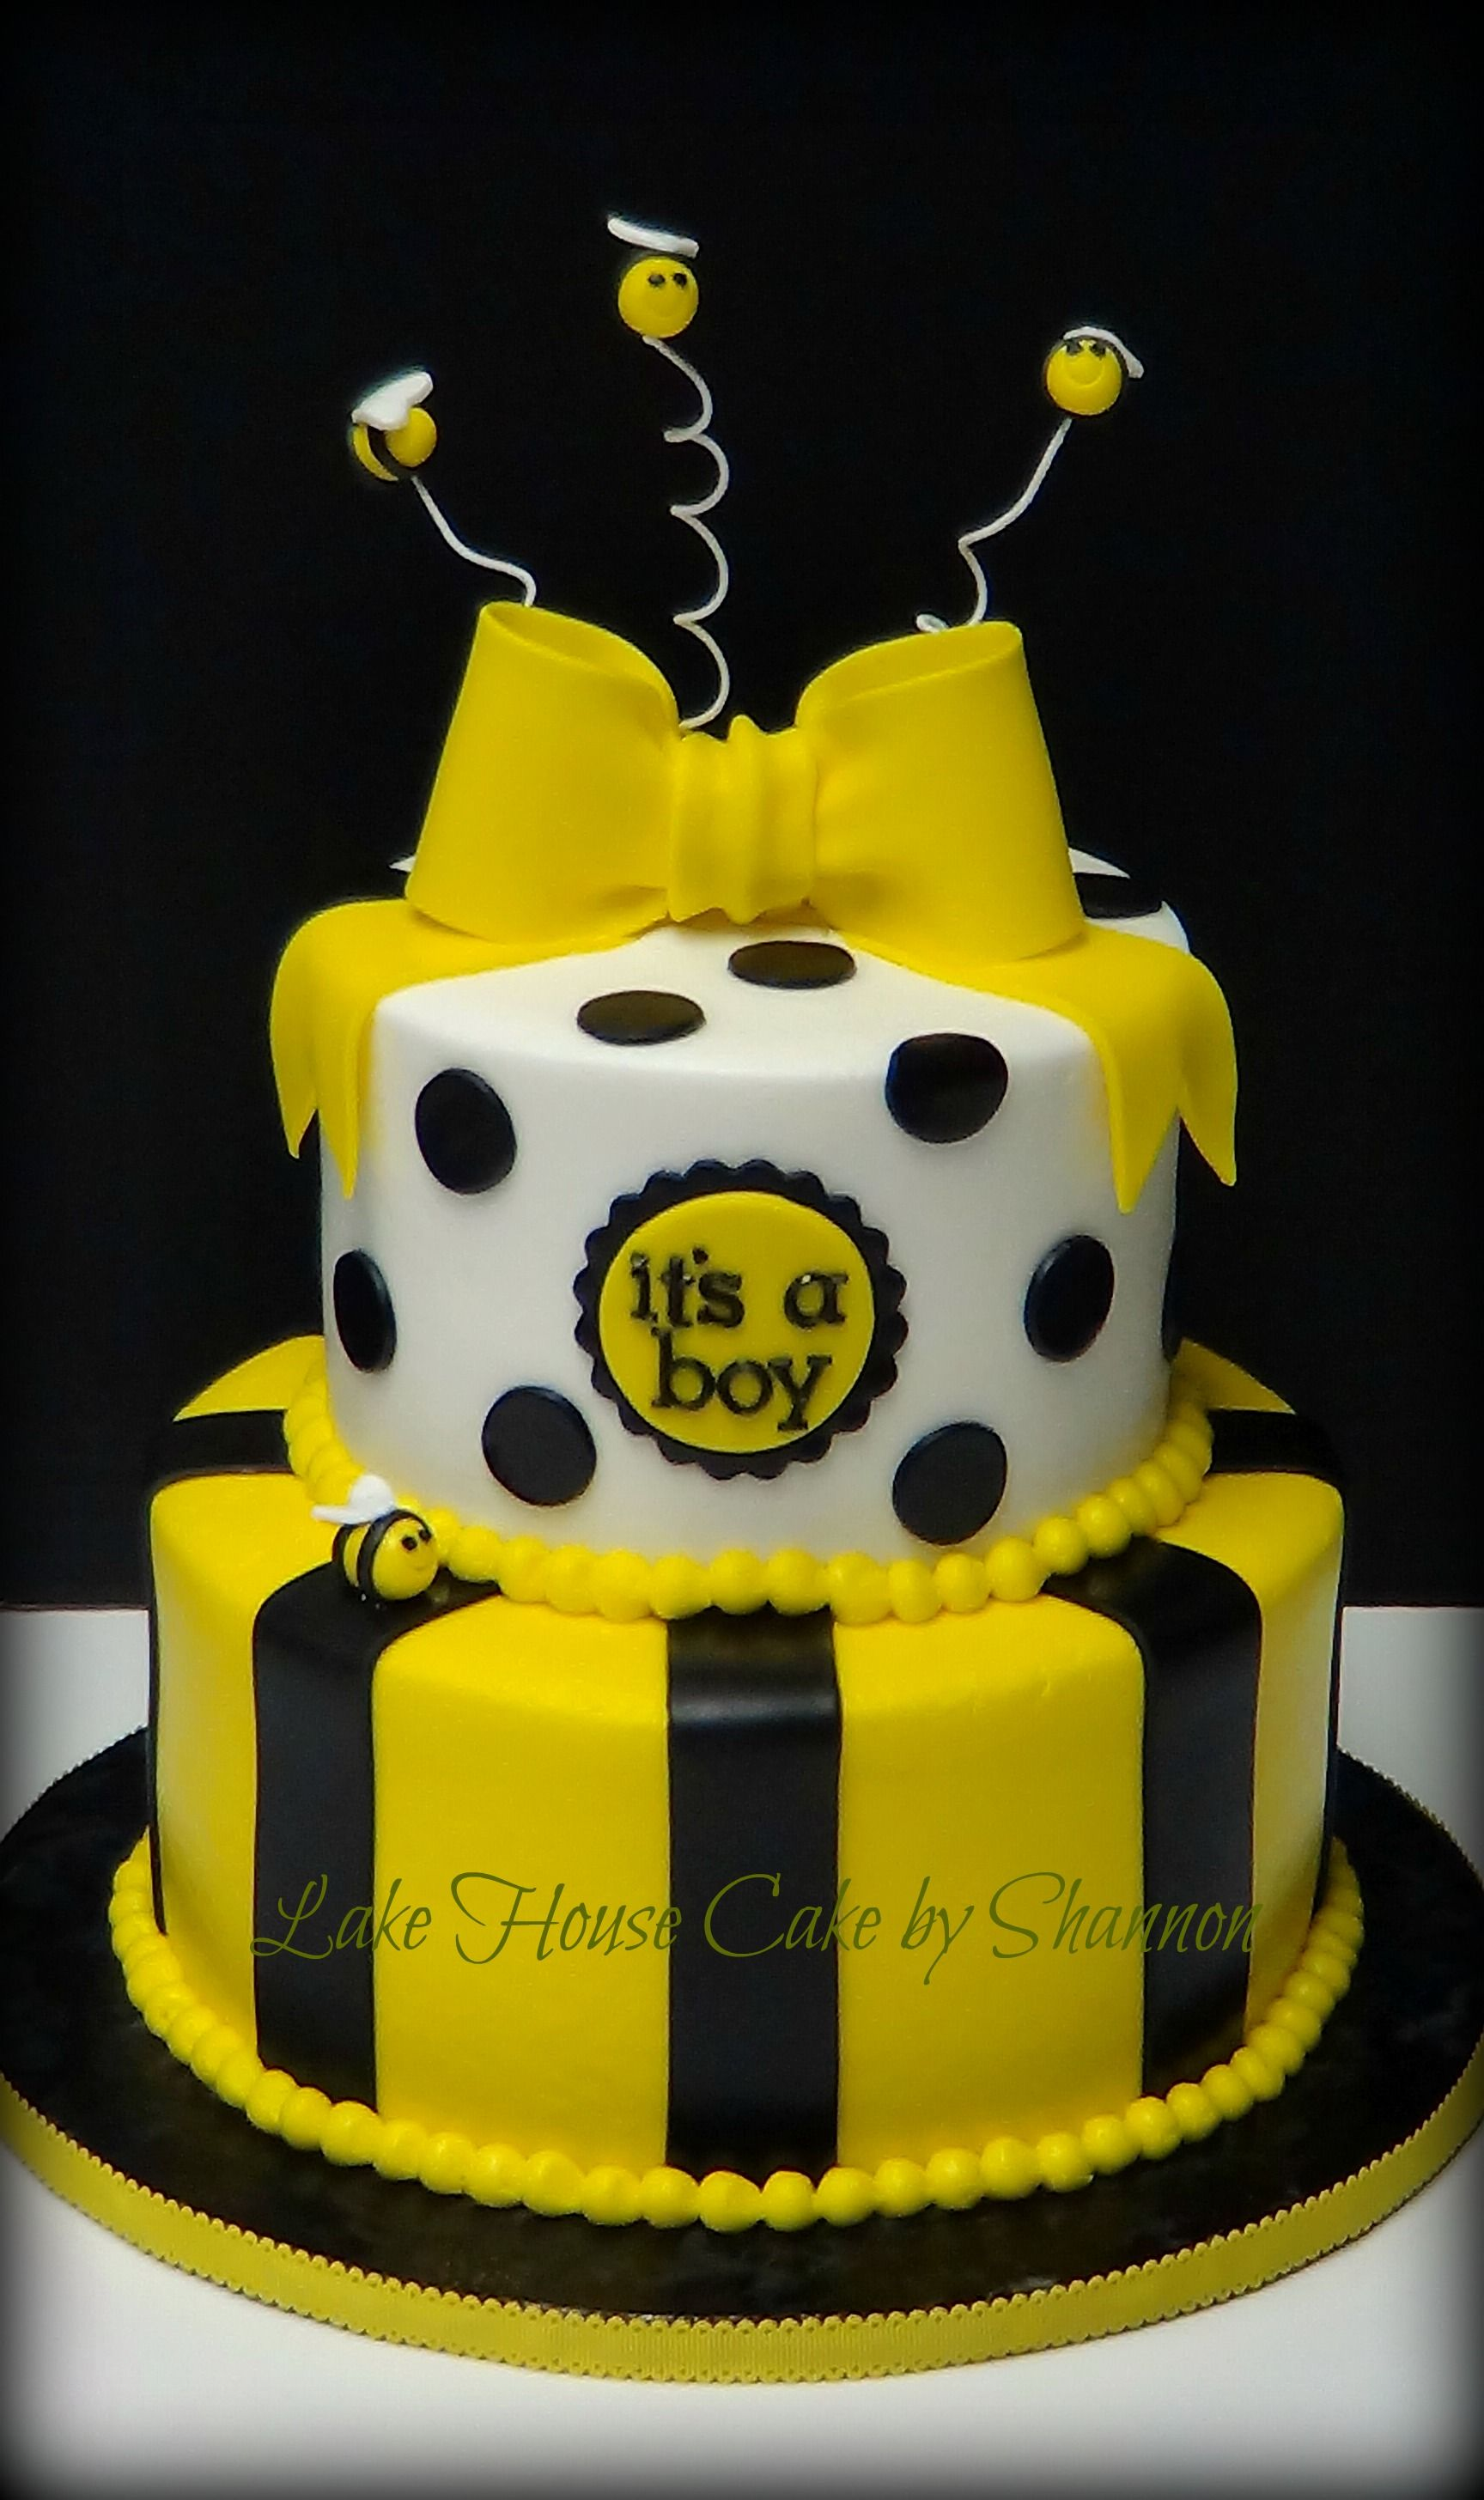 Baby Shower Cake Black White Yellow Polka Dots Stripes 2 Tiered